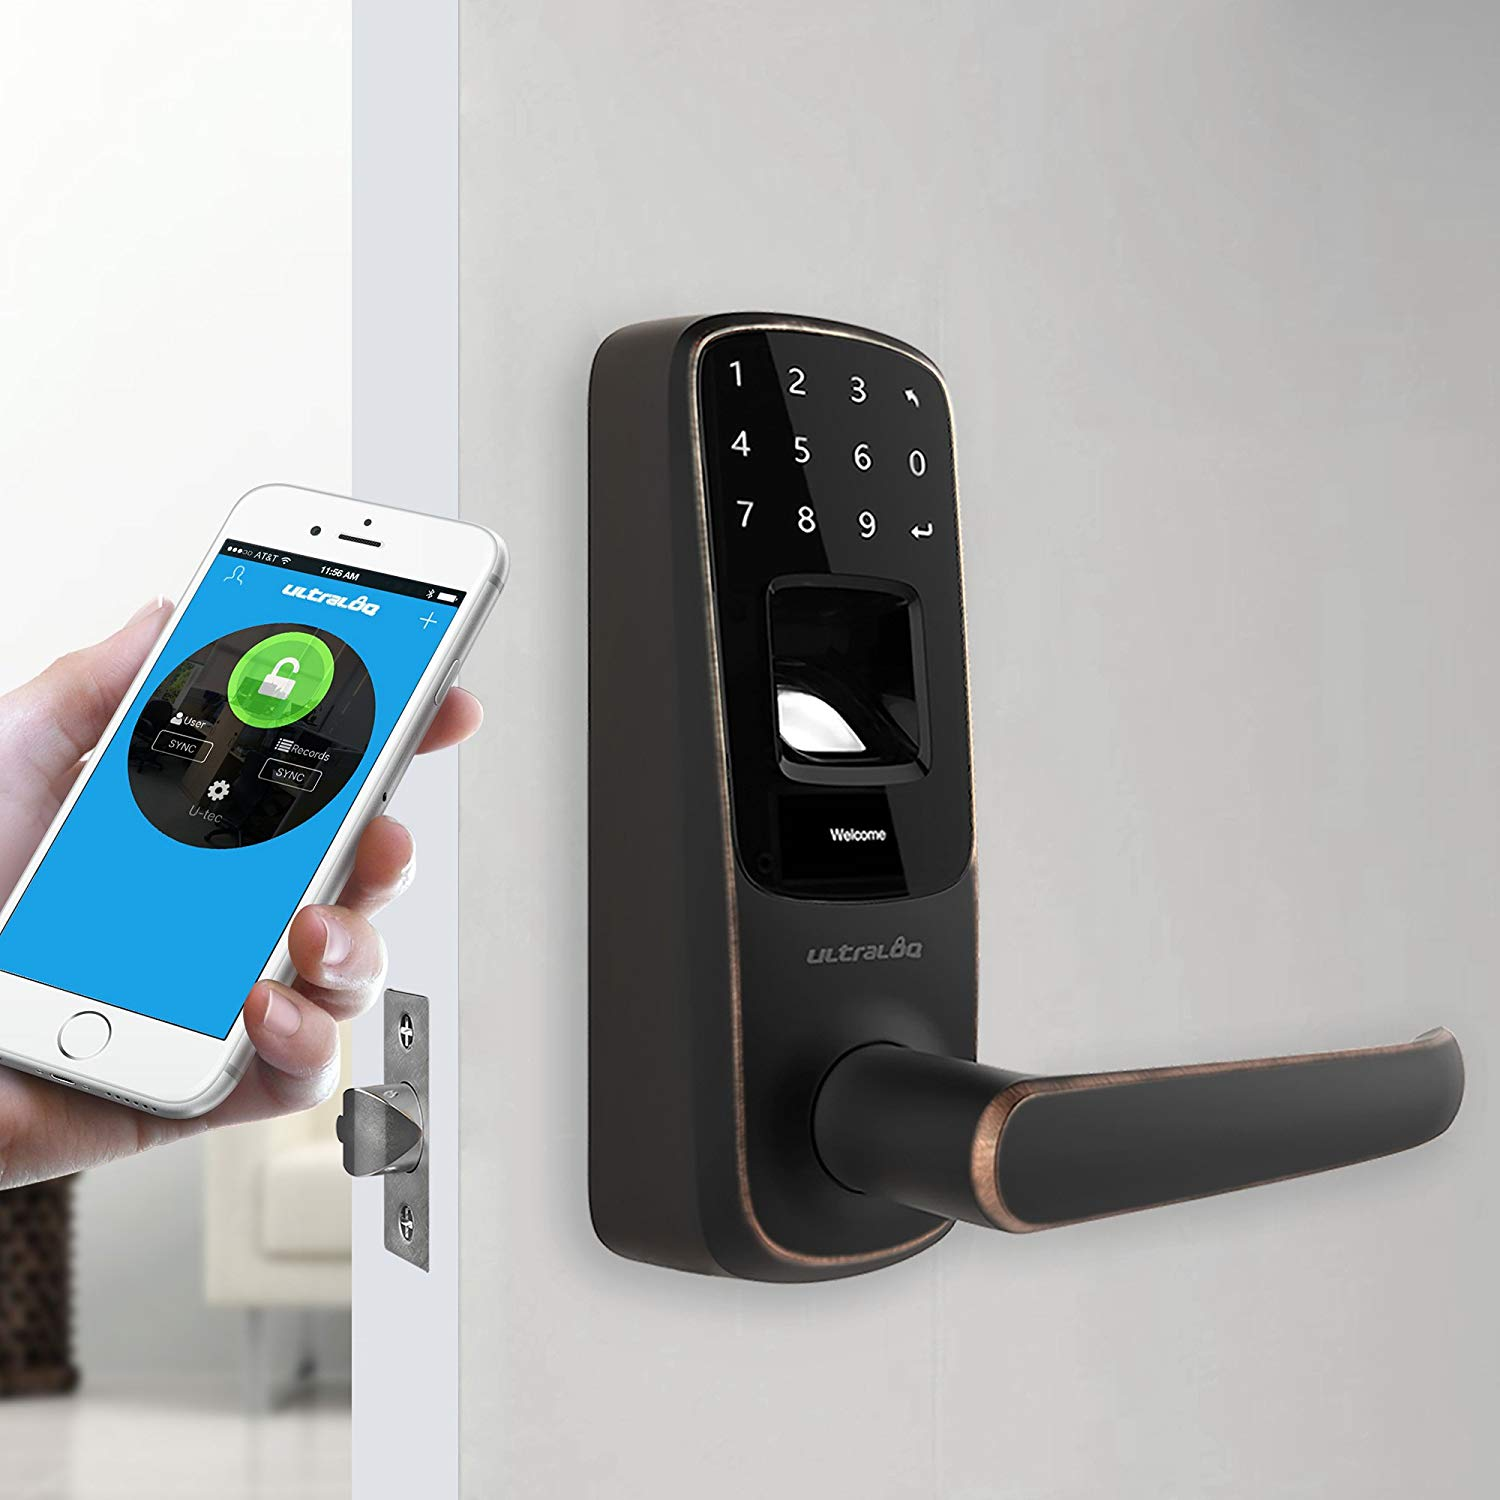 Ultraloq UL3 BT Bluetooth Enabled Fingerprint and Touchscreen Keyless Smart Door Lock